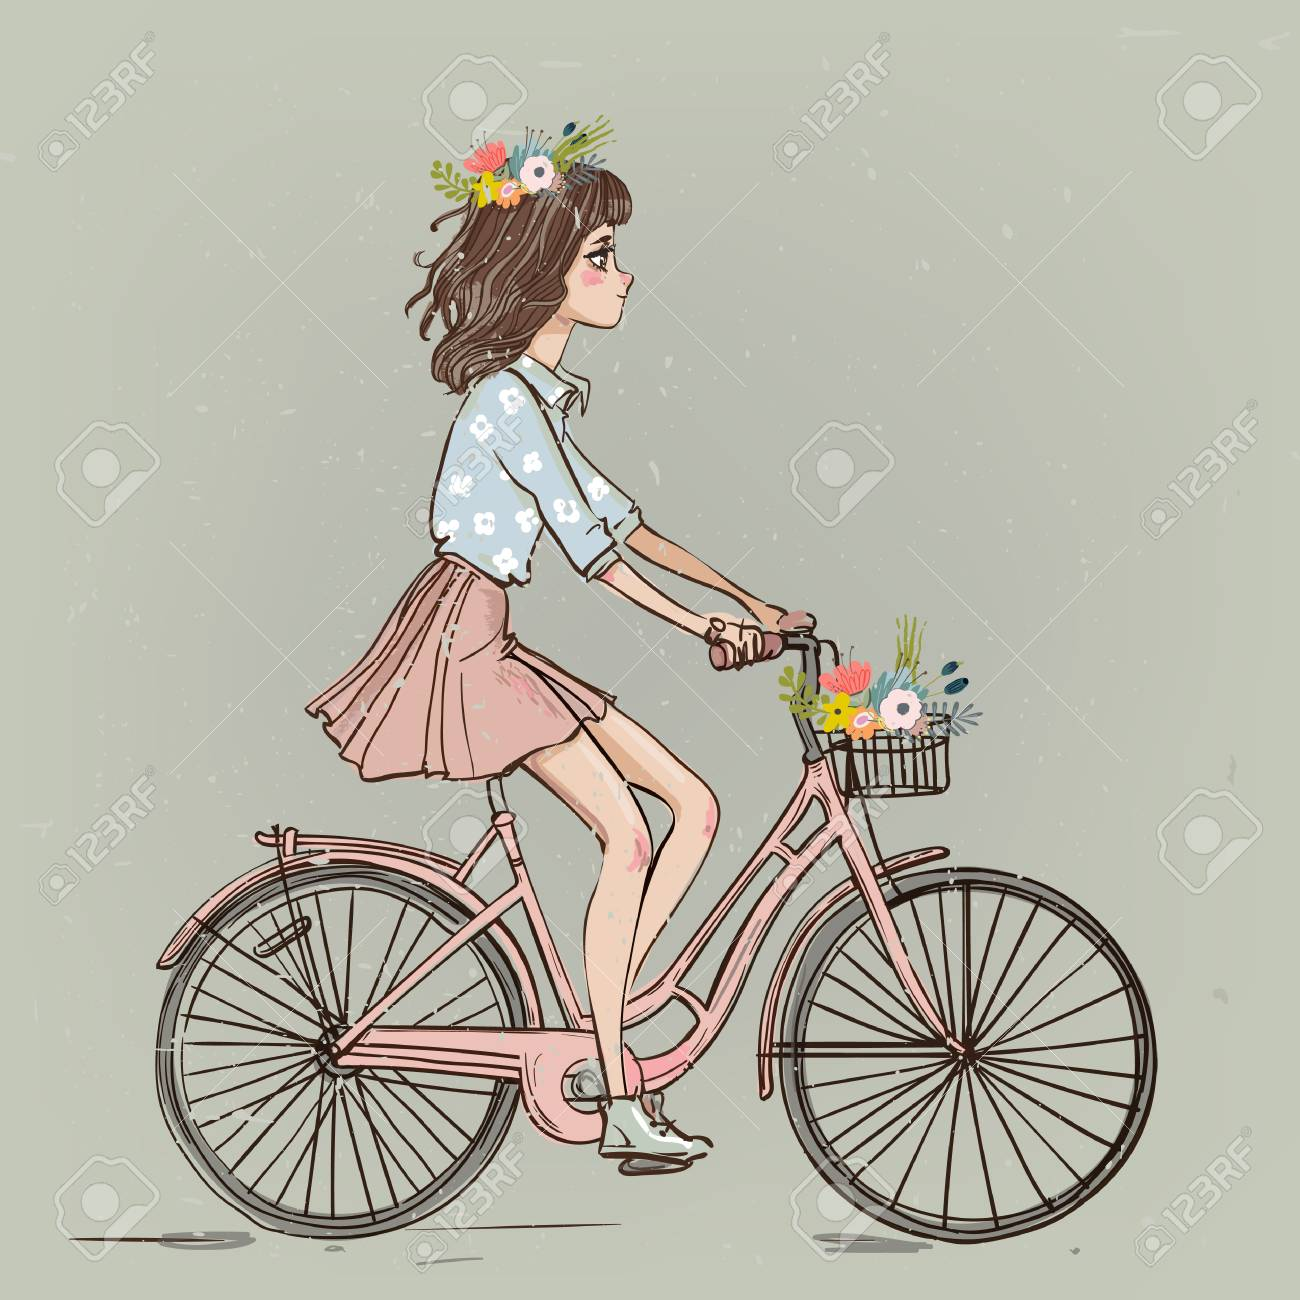 Cute Cartoon Girl On Bike With Flowers Royalty Free Cliparts ...